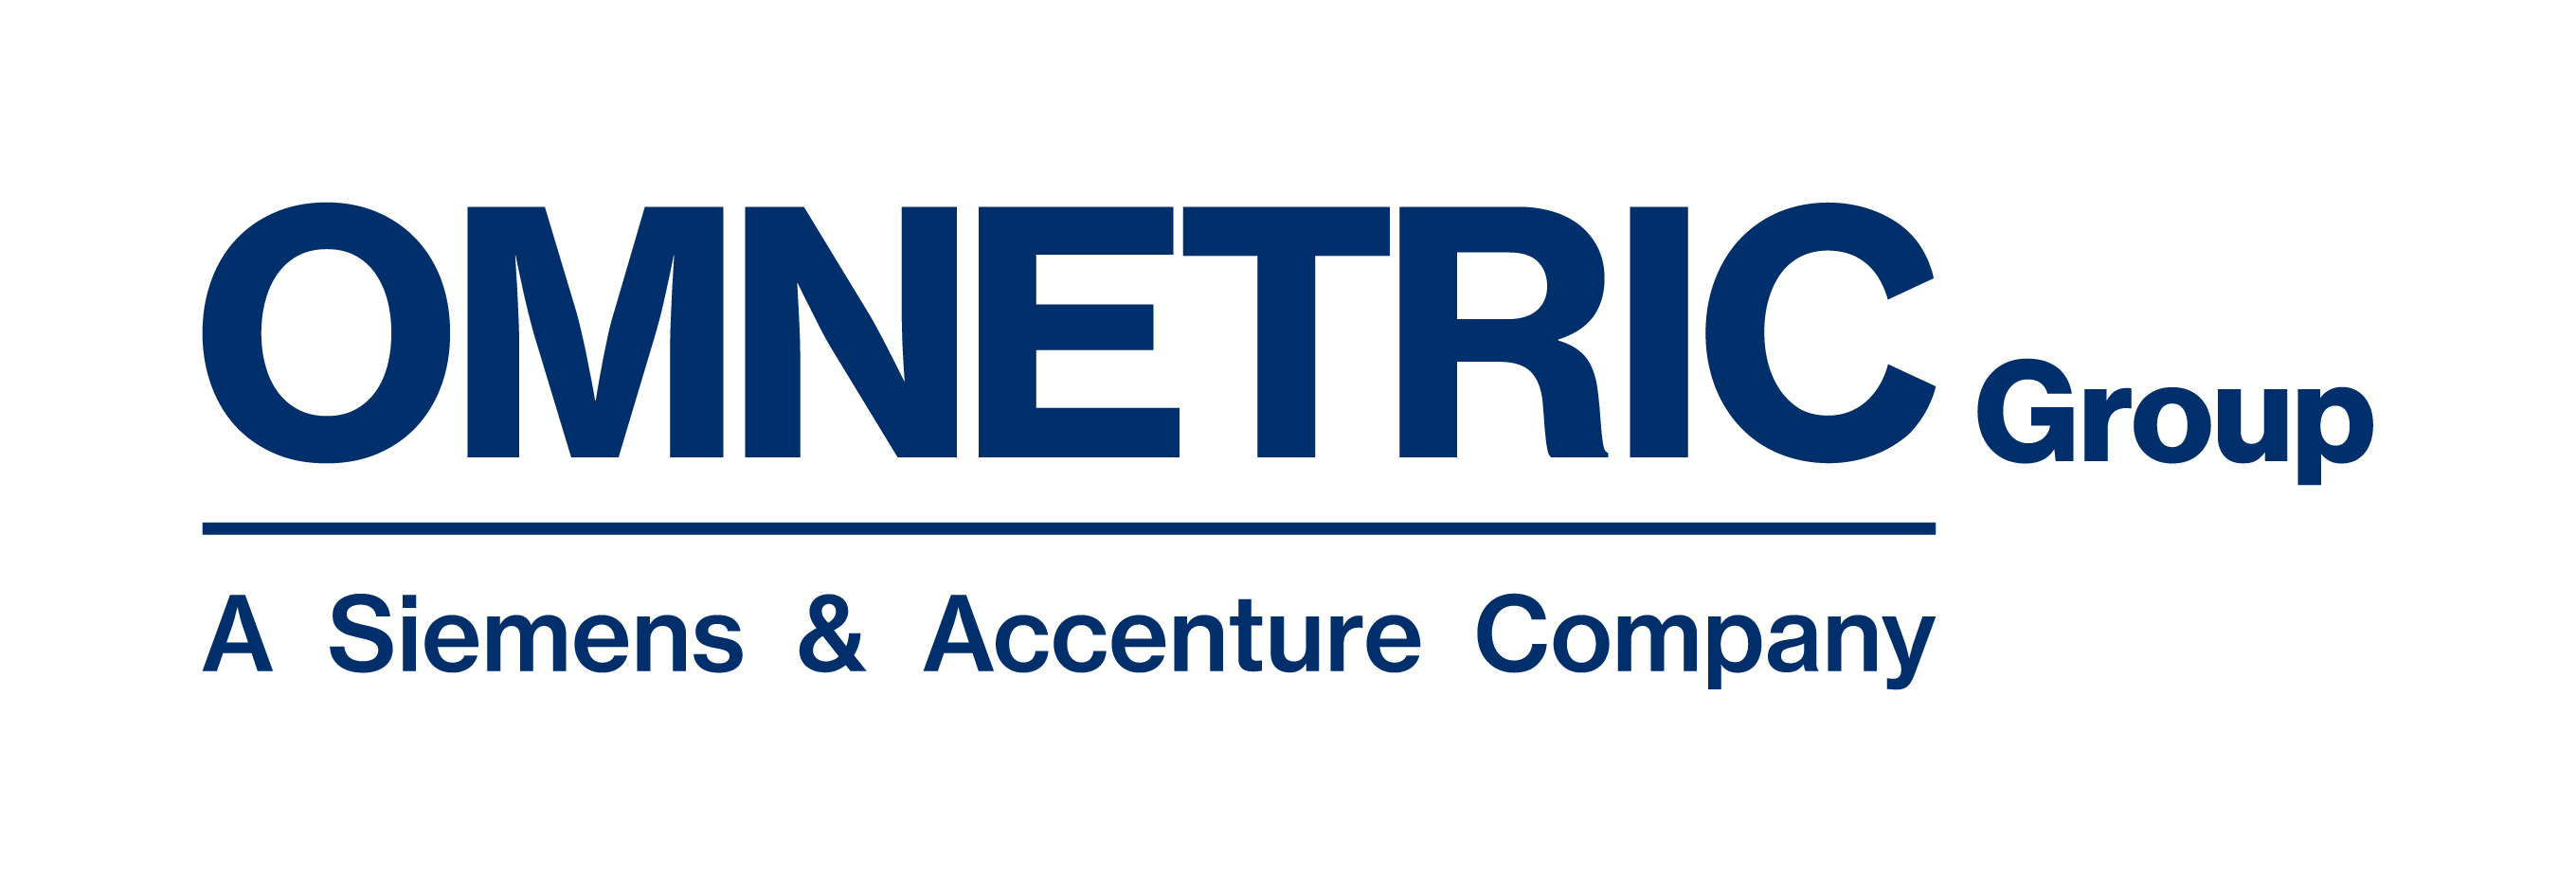 Omnetric_logo_primary_blue_RGB.jpg